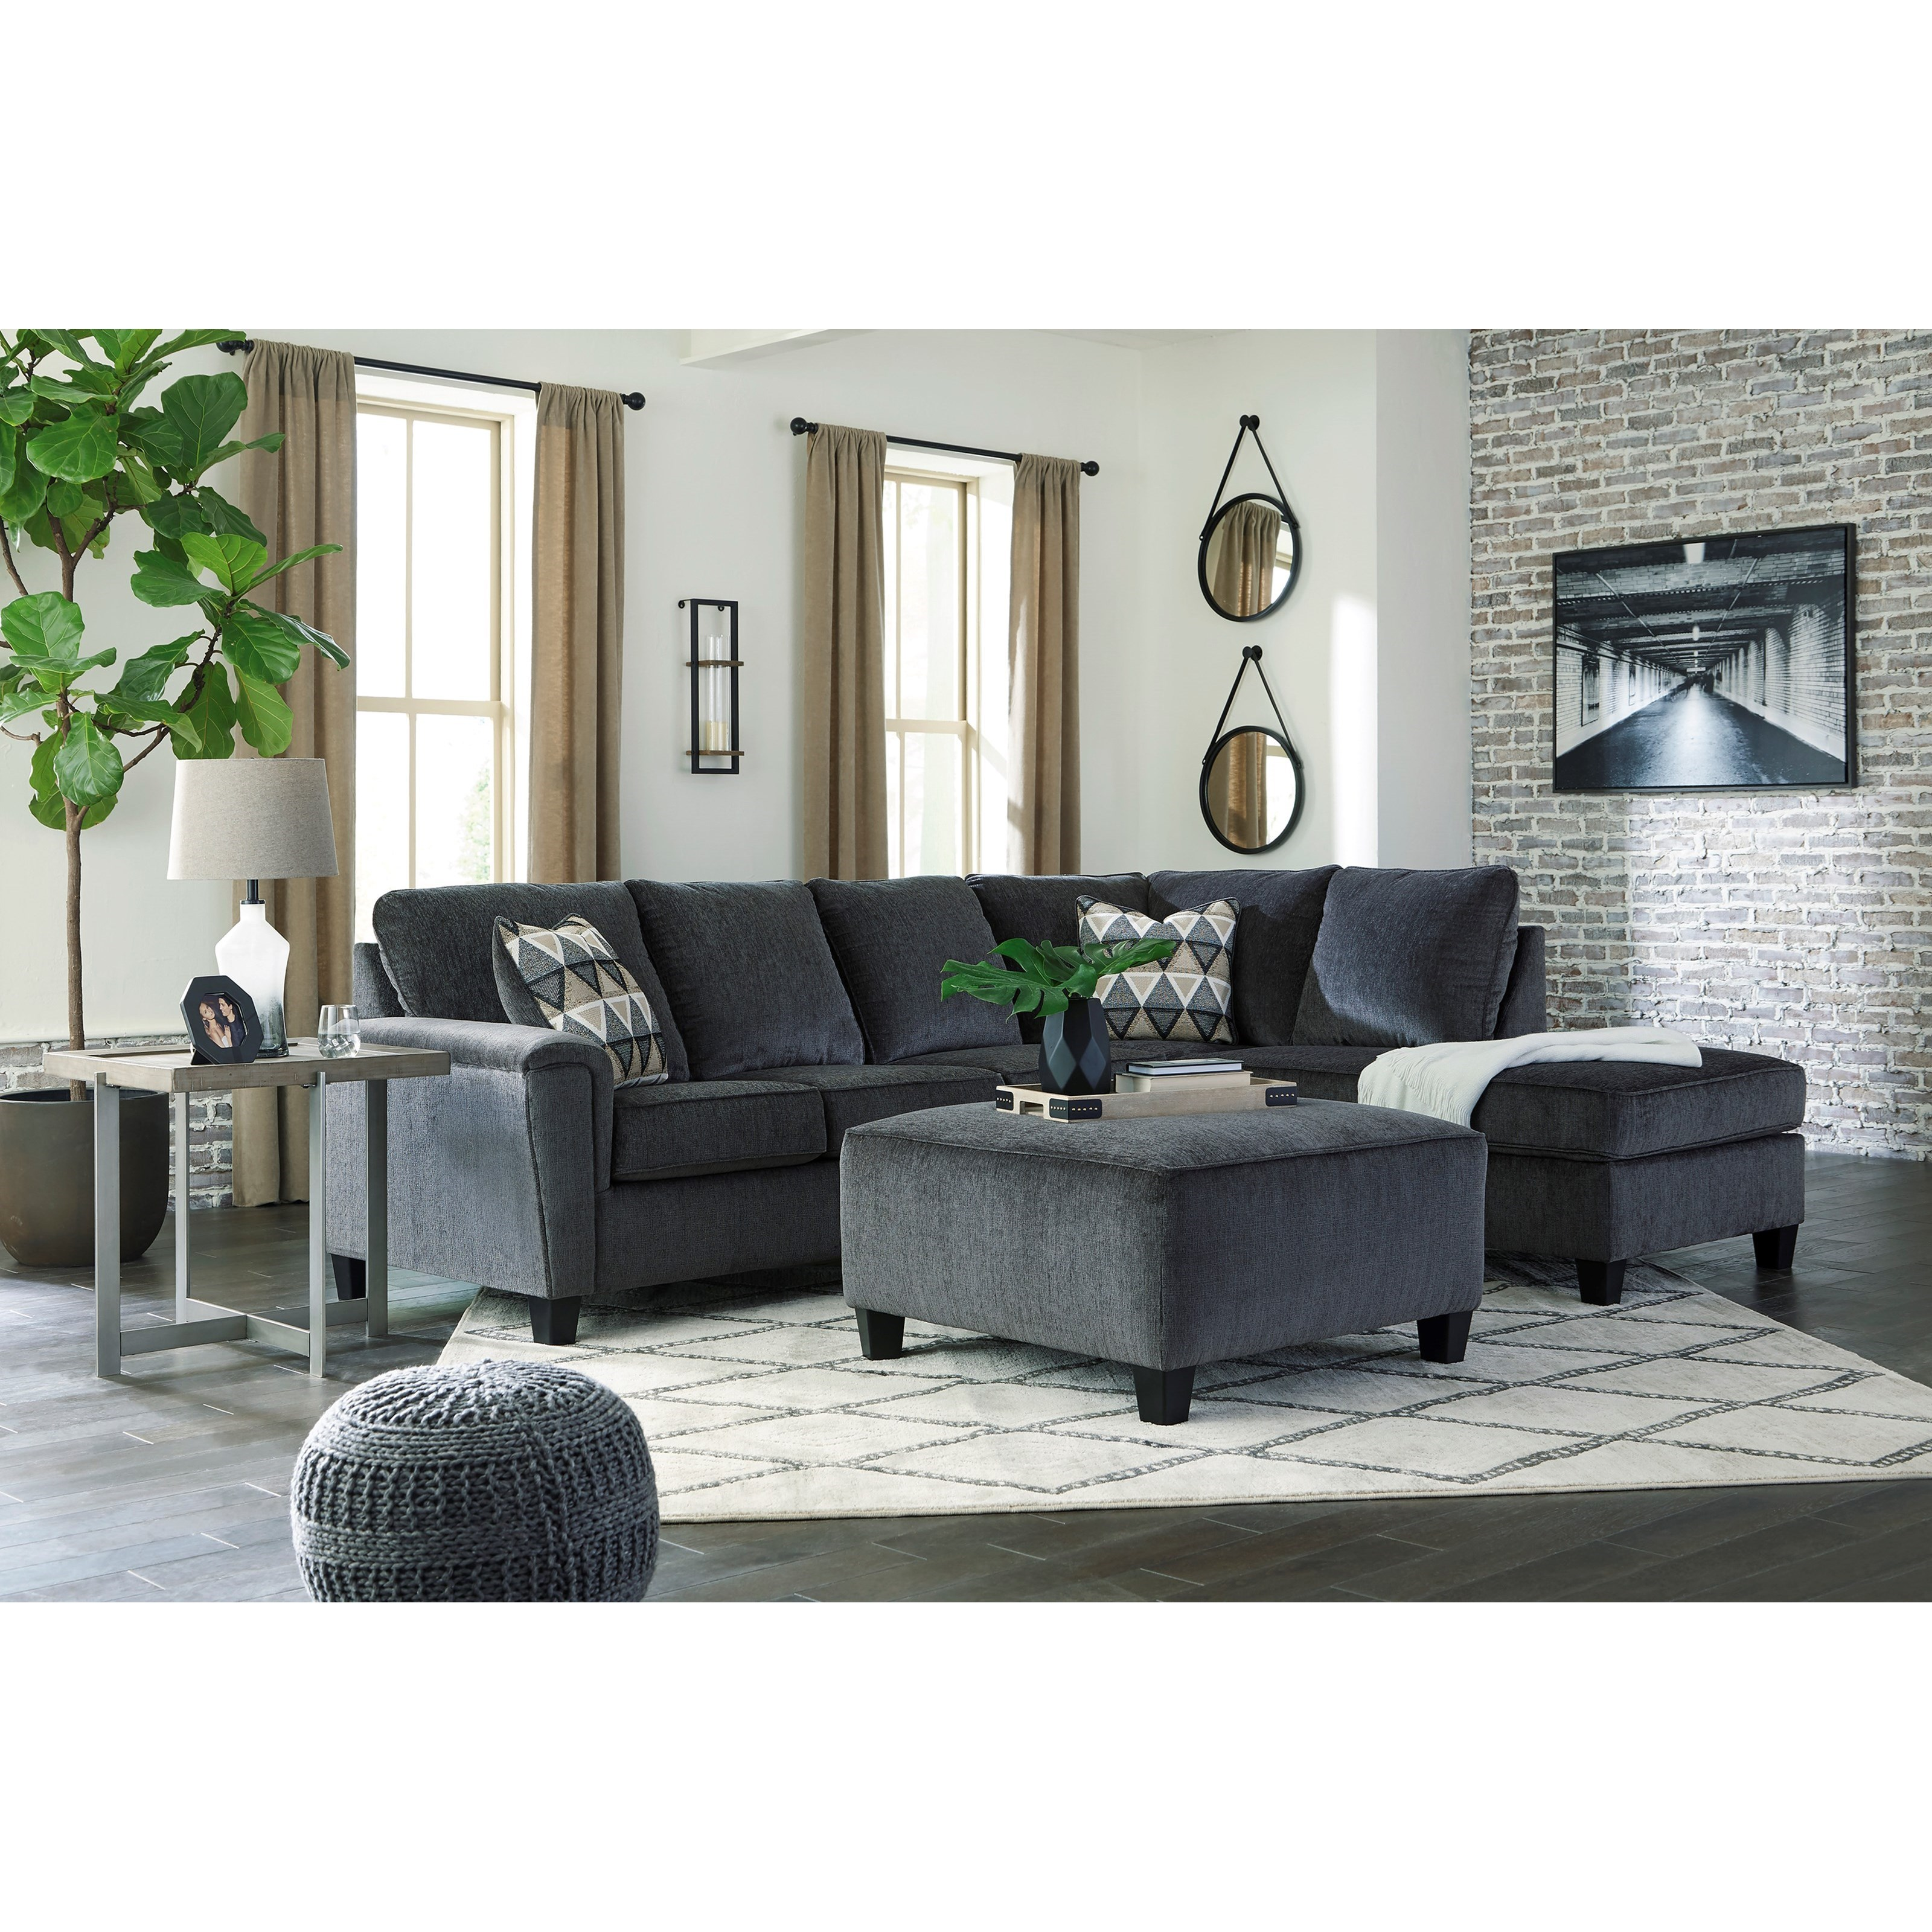 Abinger Living Room Group by Signature Design by Ashley at Sparks HomeStore